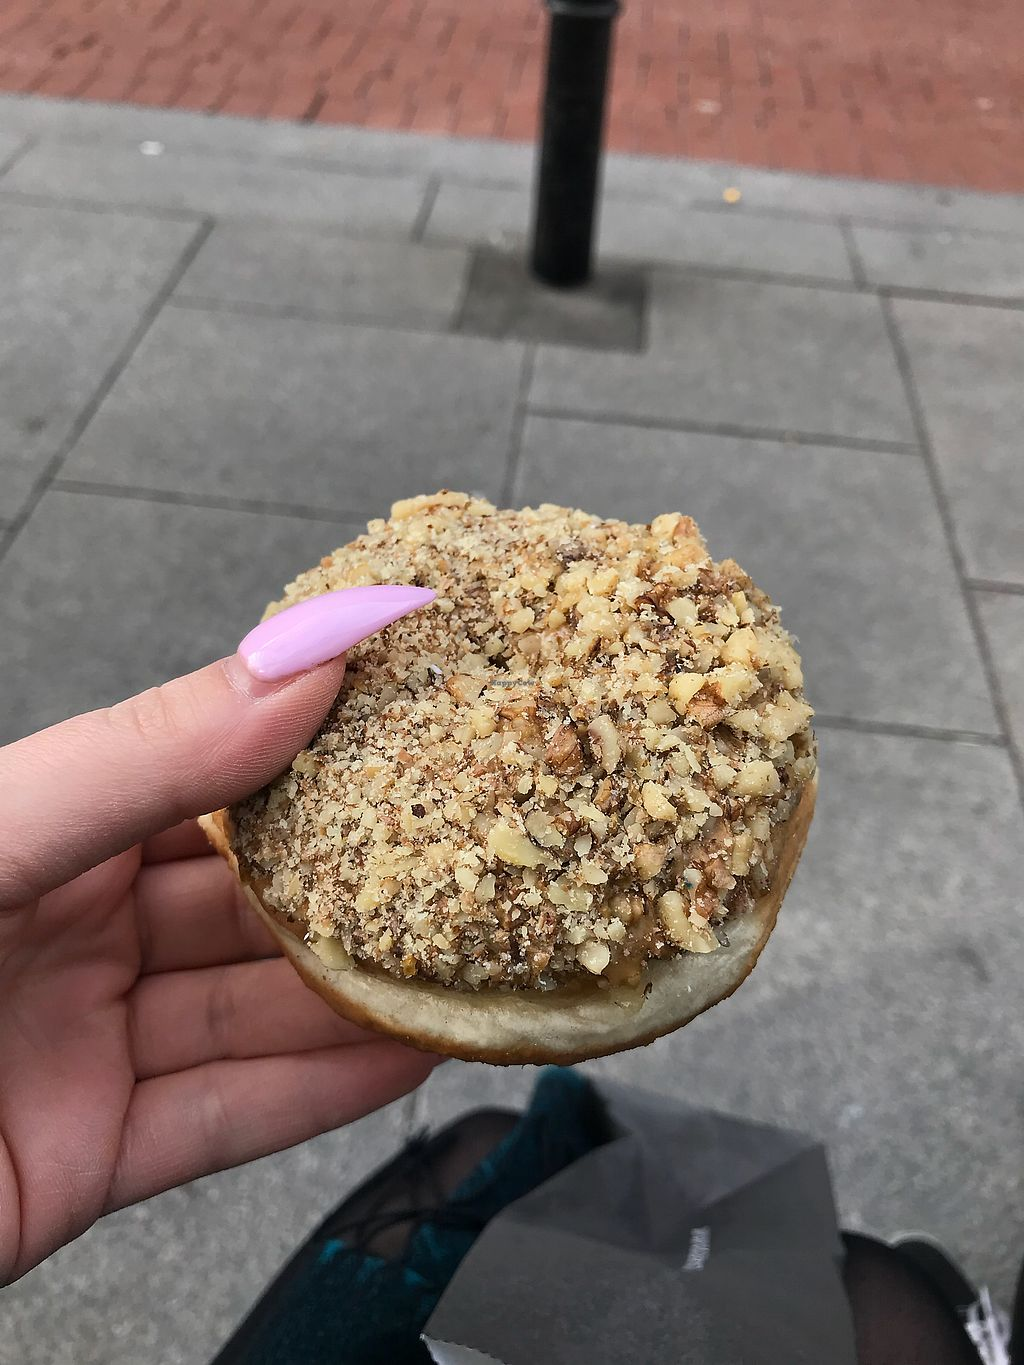 """Photo of The Rolling Donut - Dublin 1  by <a href=""""/members/profile/mgeorgioh"""">mgeorgioh</a> <br/>Coffee and walnut  <br/> March 26, 2018  - <a href='/contact/abuse/image/83413/376523'>Report</a>"""